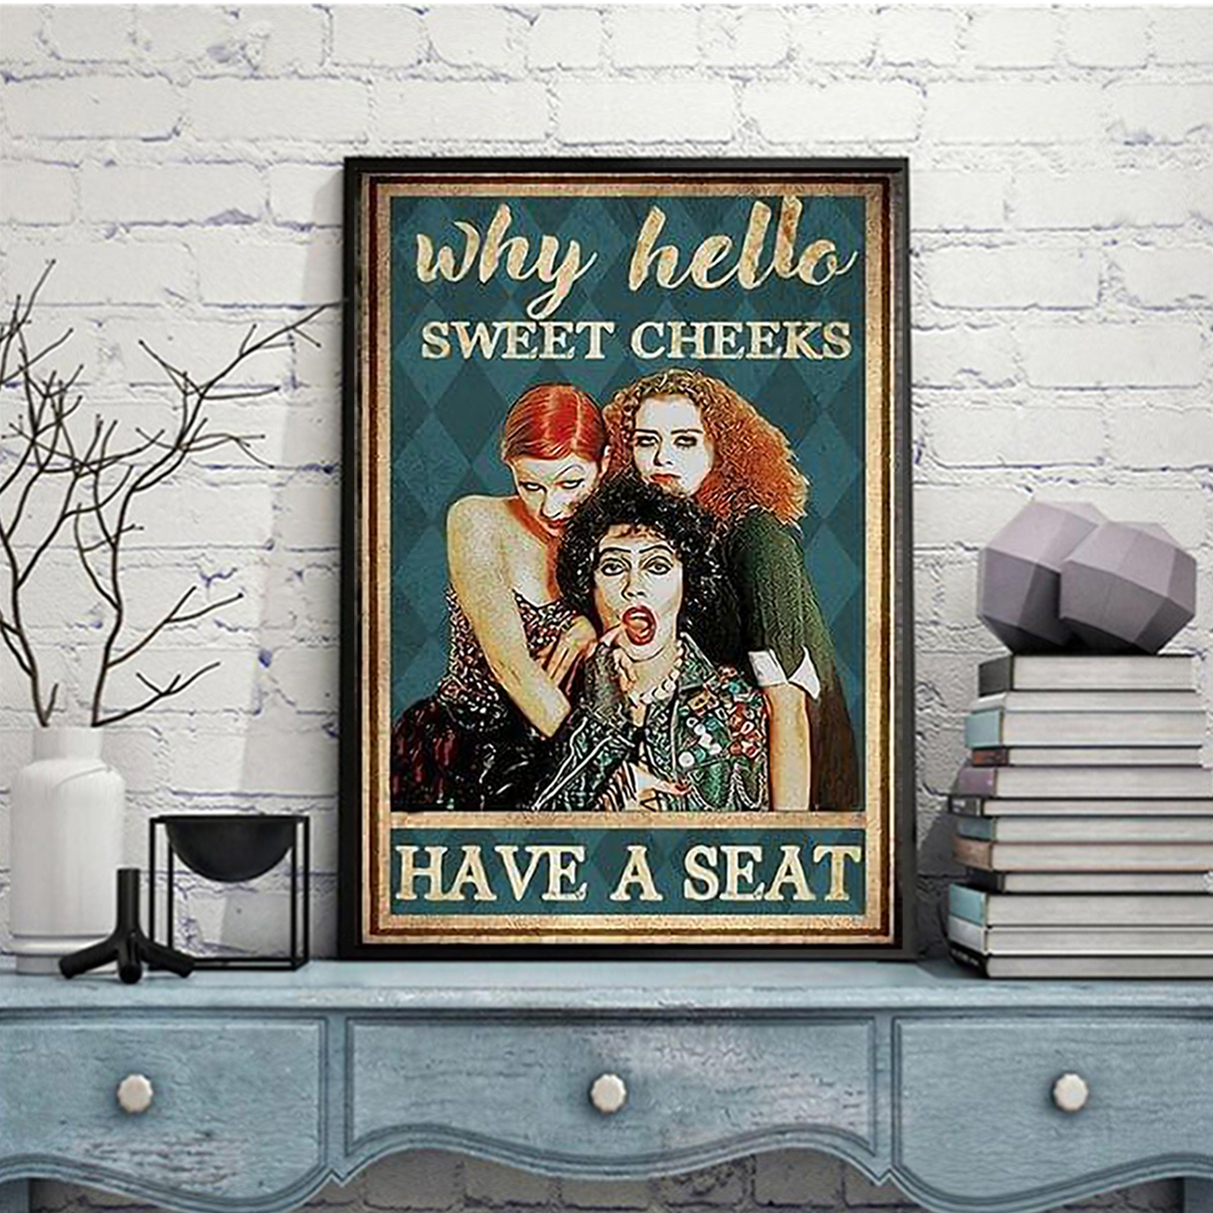 Hocus pocus why hello sweet cheeks have a seat poster A3